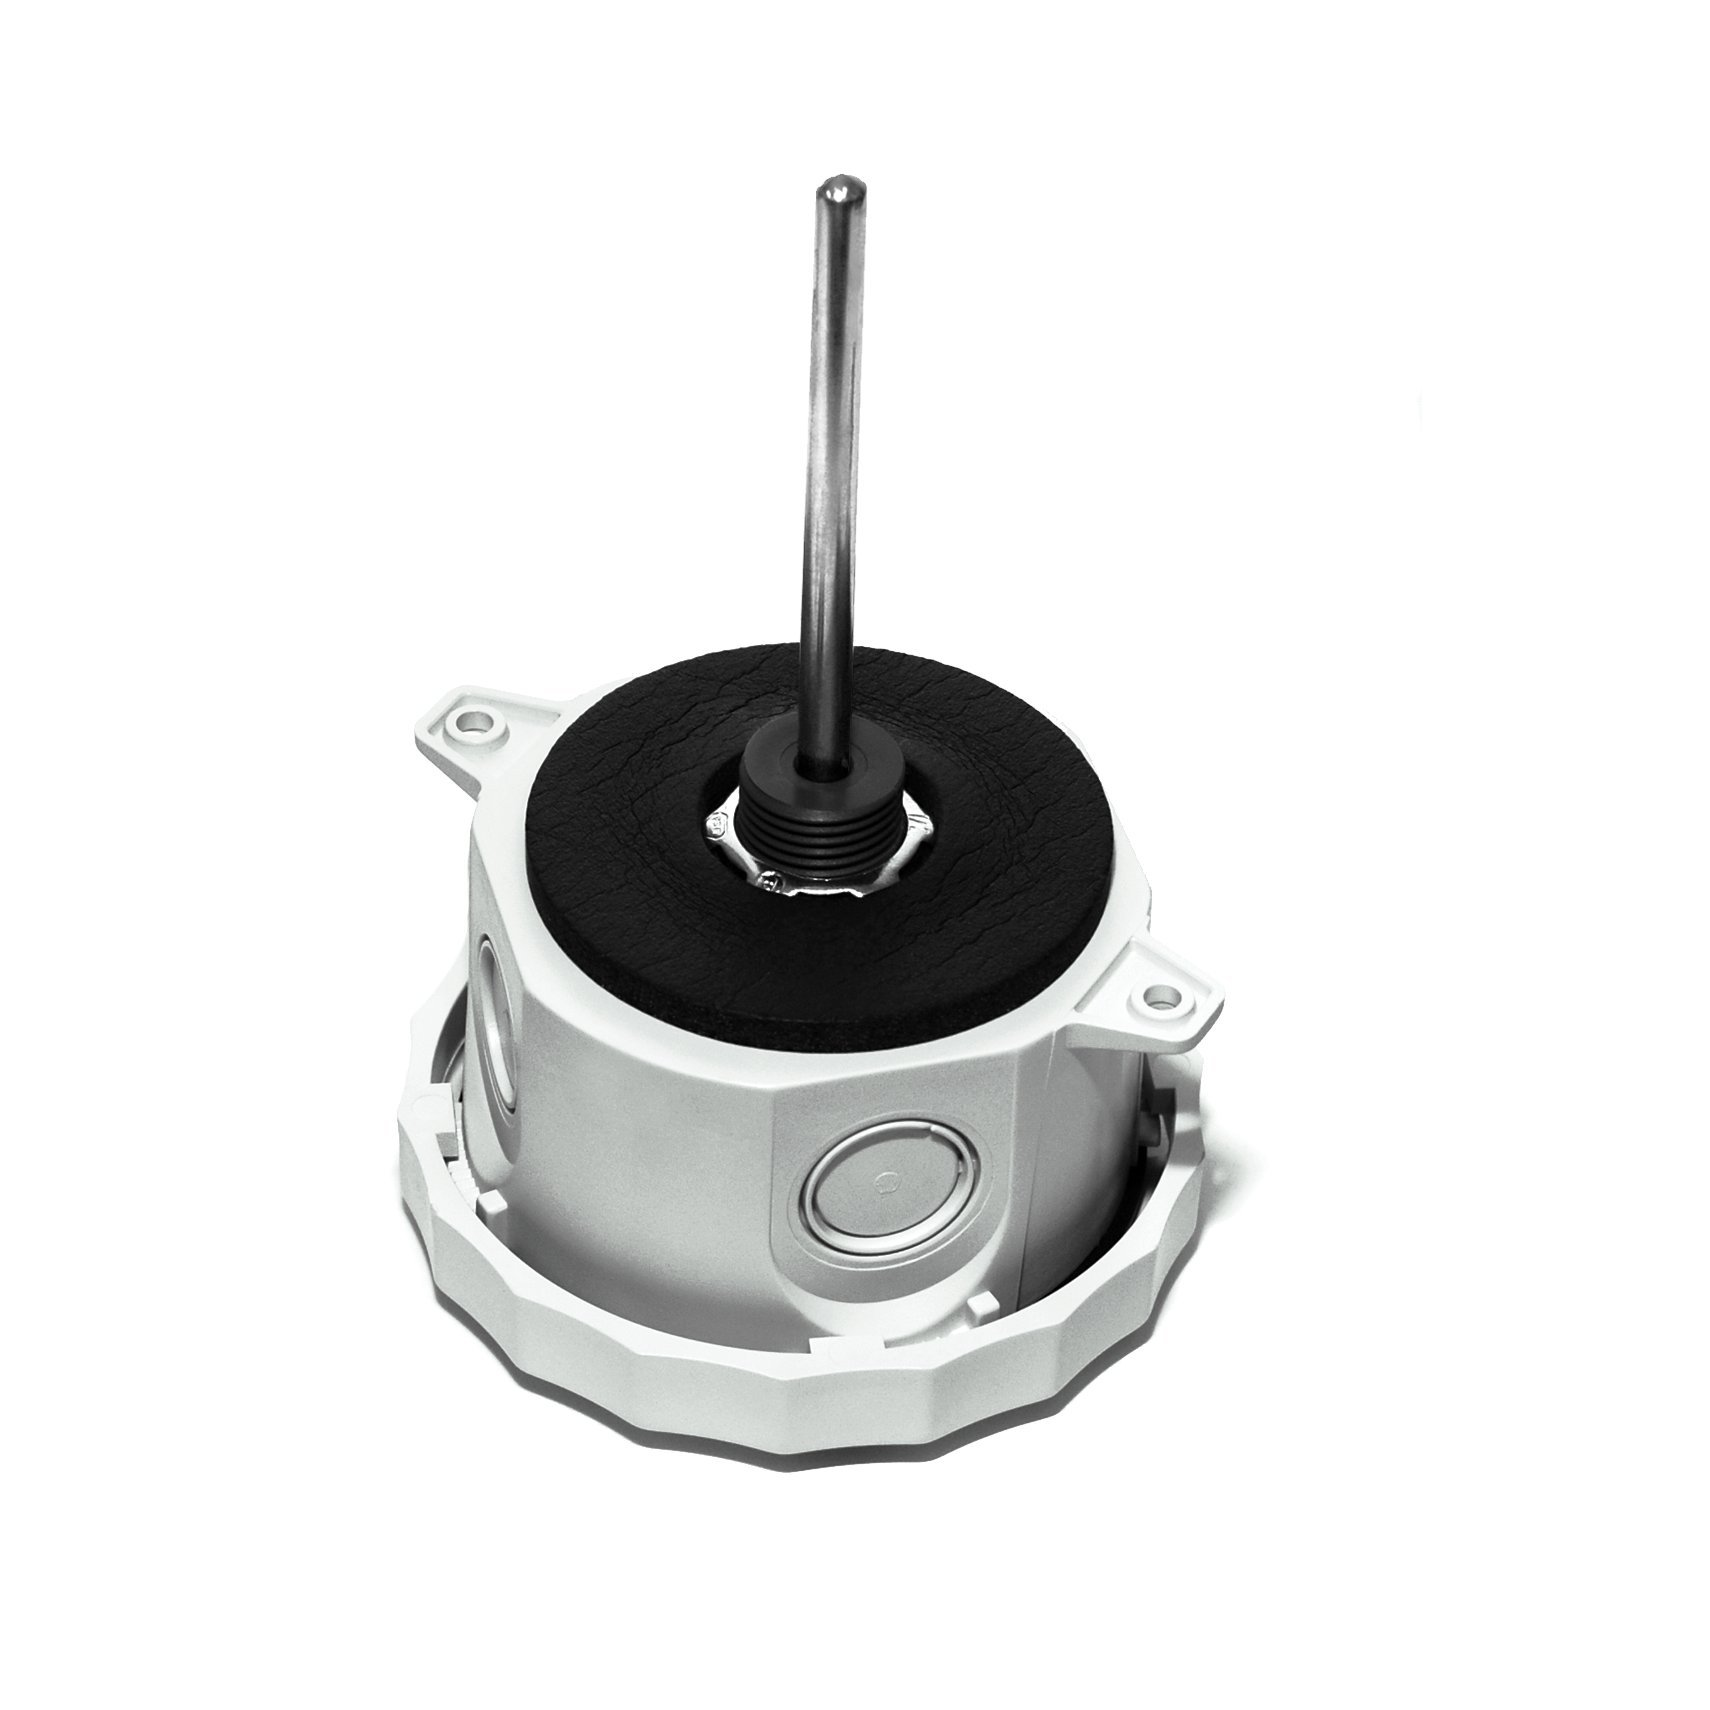 A/1K-2W-RA-18''-EH | ACI | RTD 1000 ohm (2 wire) | Rigid Probe Averaging Temperature Sensor | Sensor Length: 18 inch | Weather Tight (European) Housing Enclosure Box |